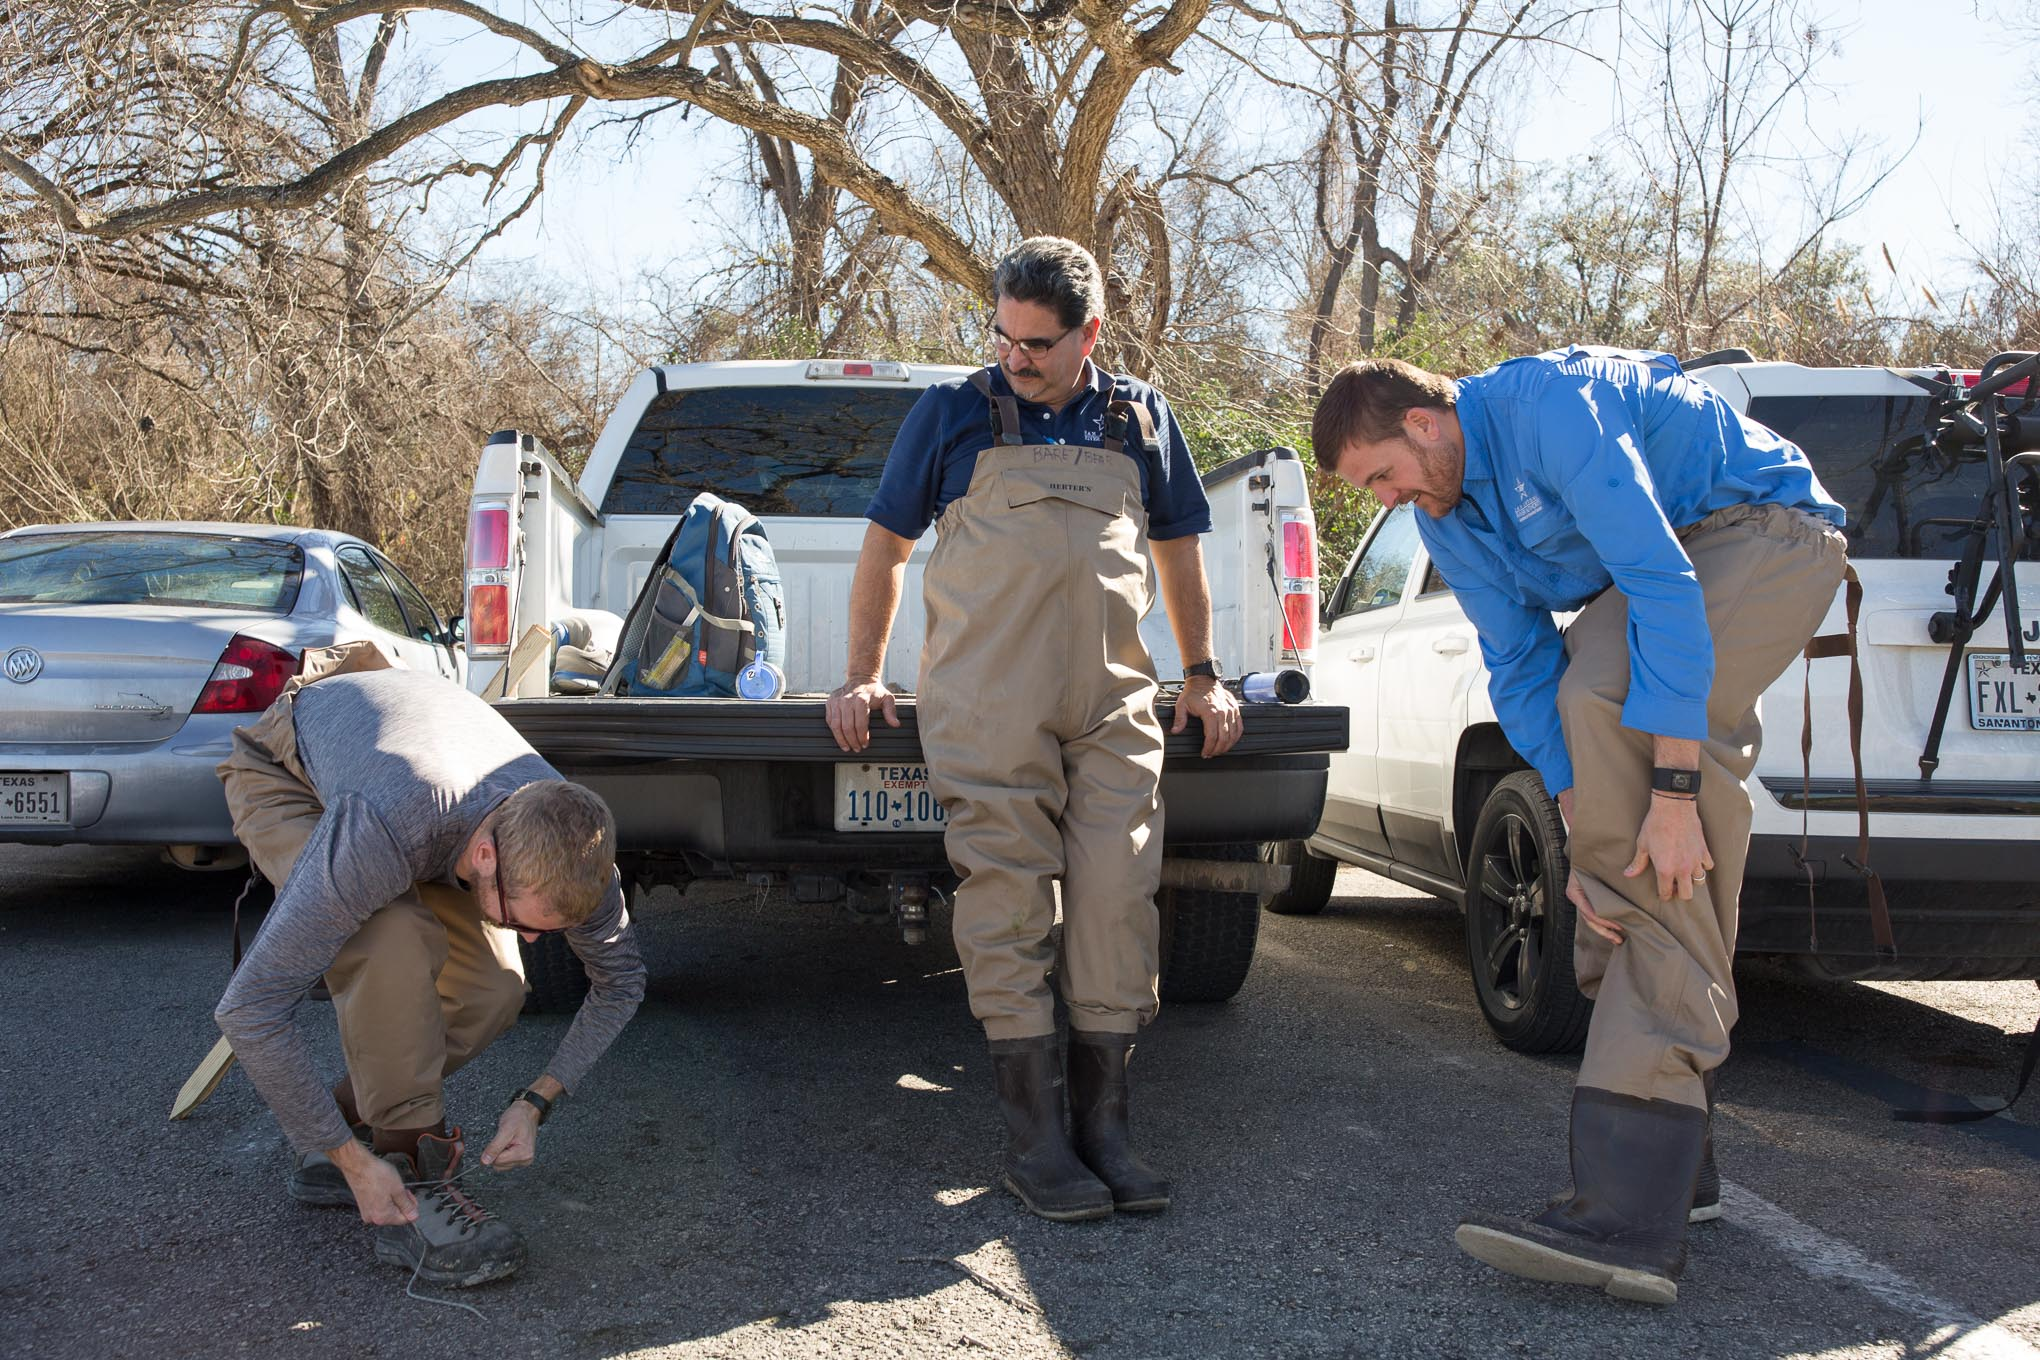 San Antonio River Authority Aquatic Biologists (left to right) Chris Vaughn, Larry Larralde, and Shaun Donovan get dressed into waders before setting out for the San Antonio River.